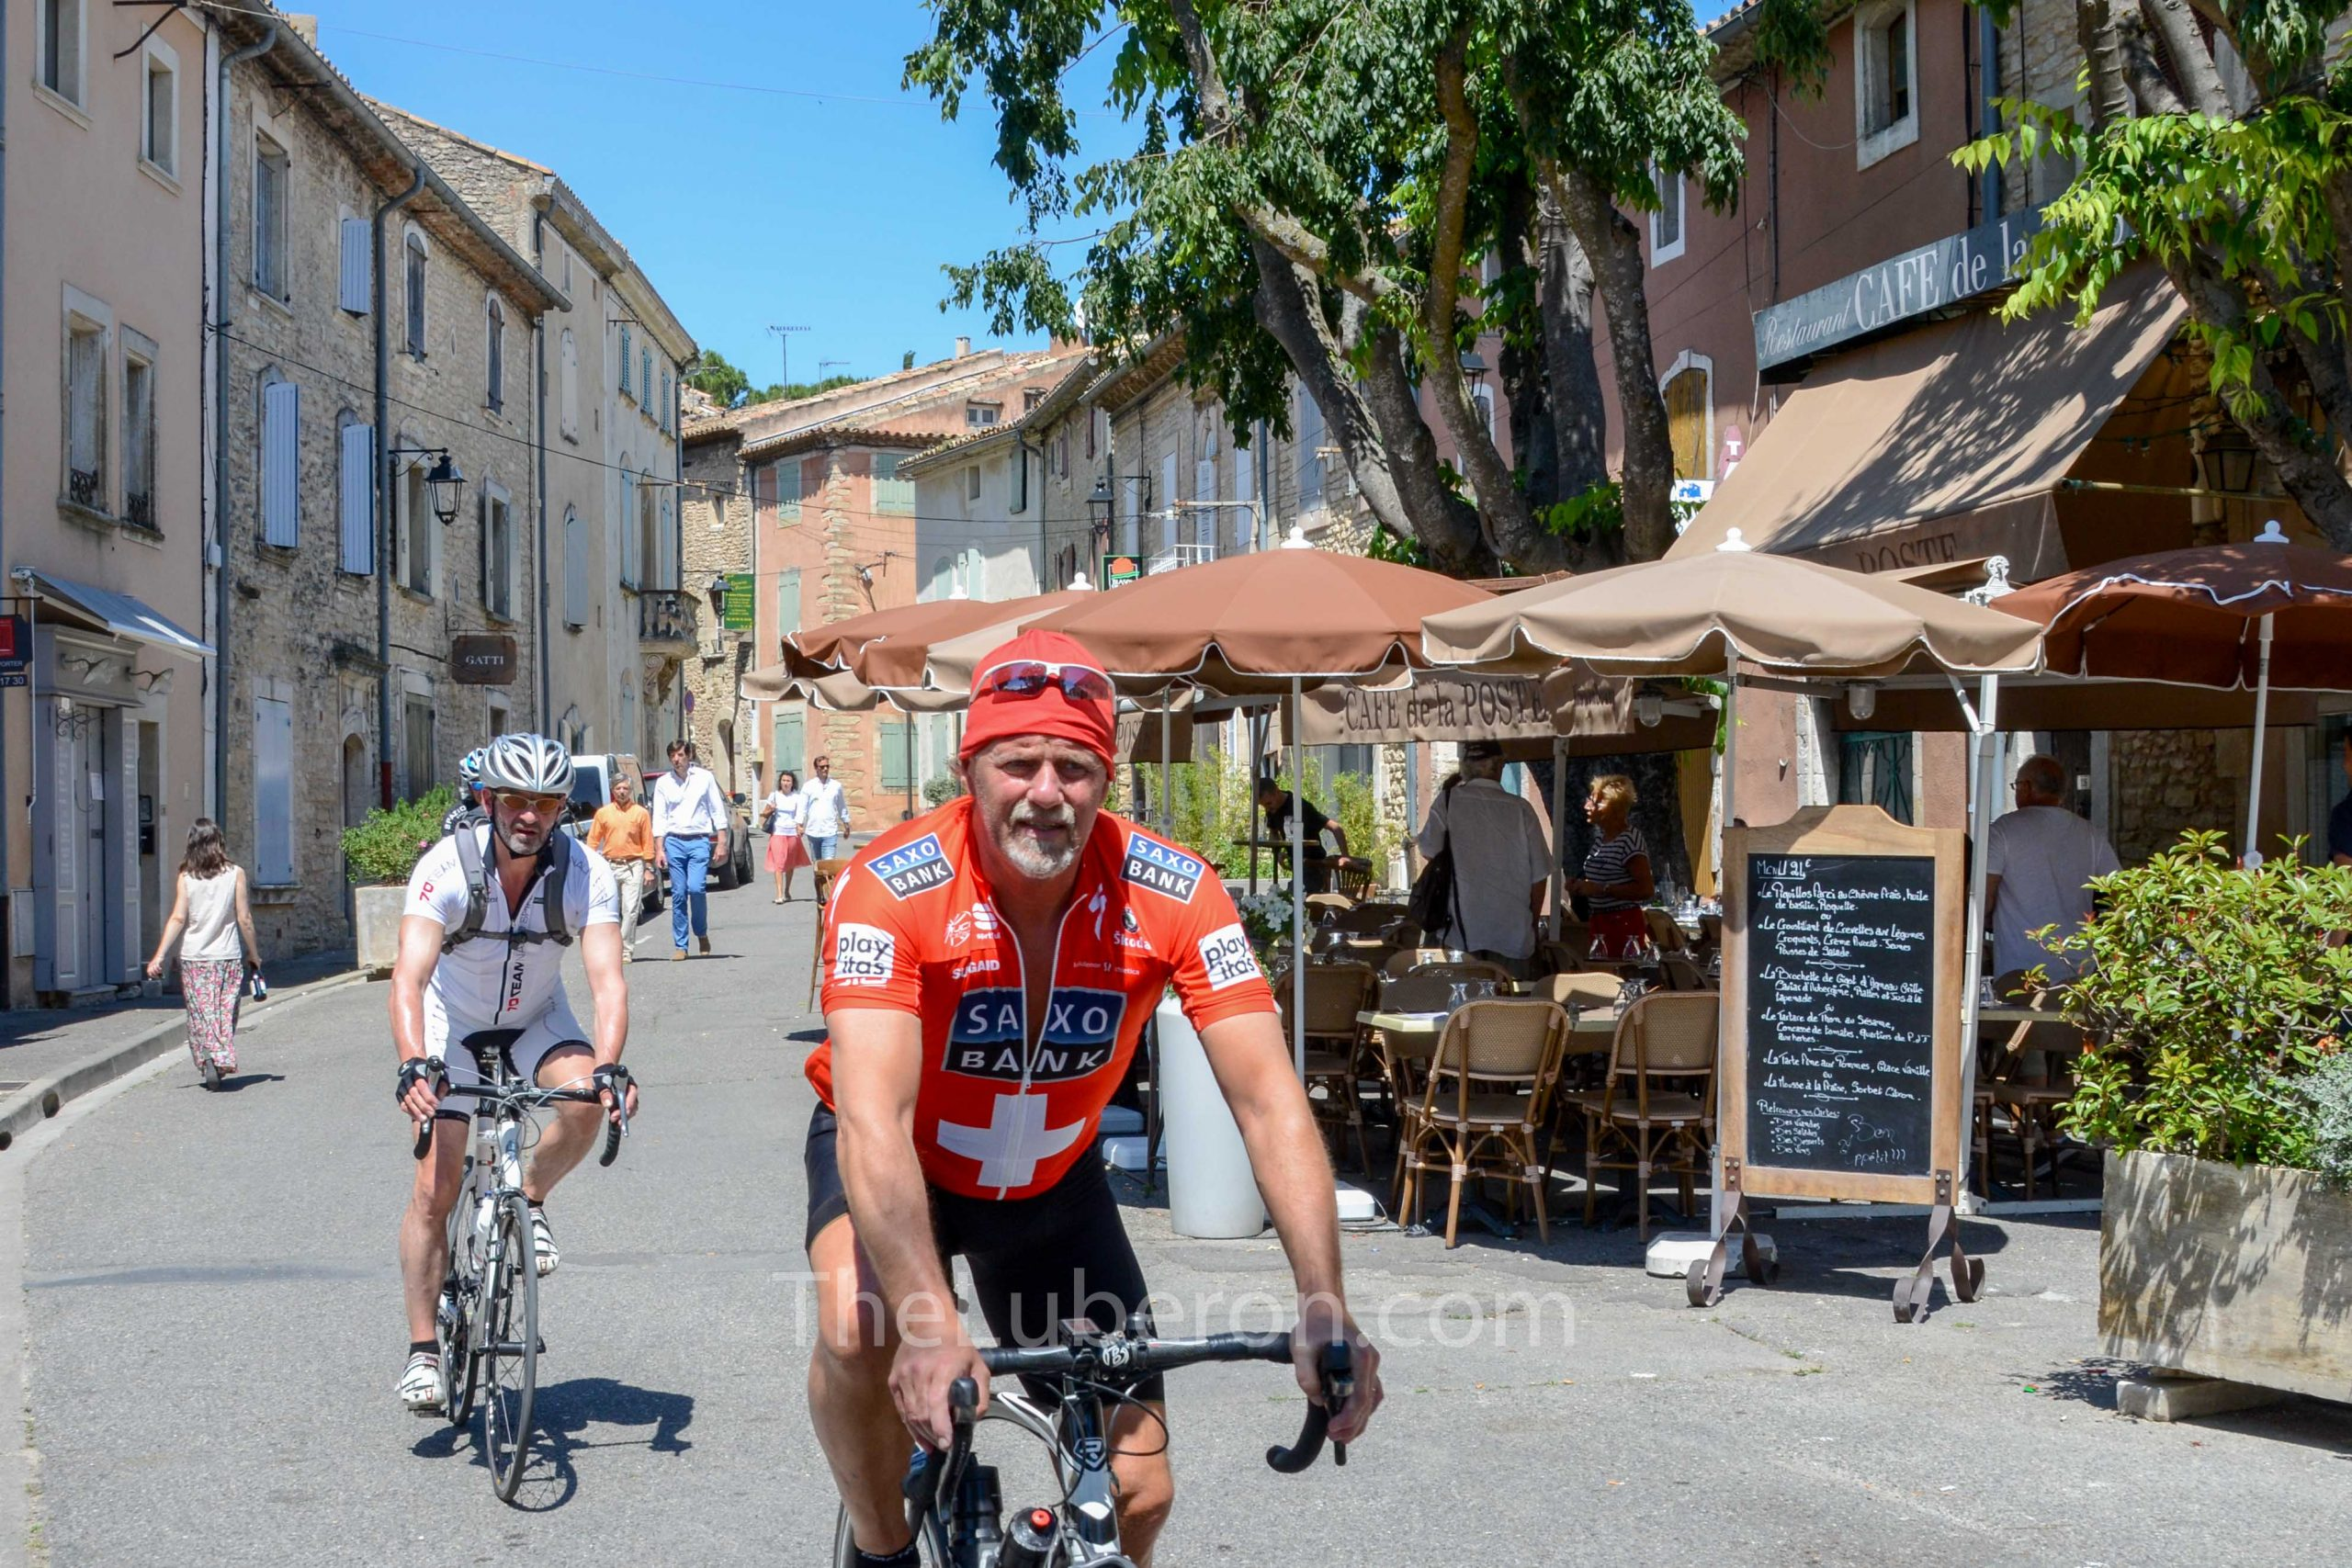 Cyclists in th centre of Goult